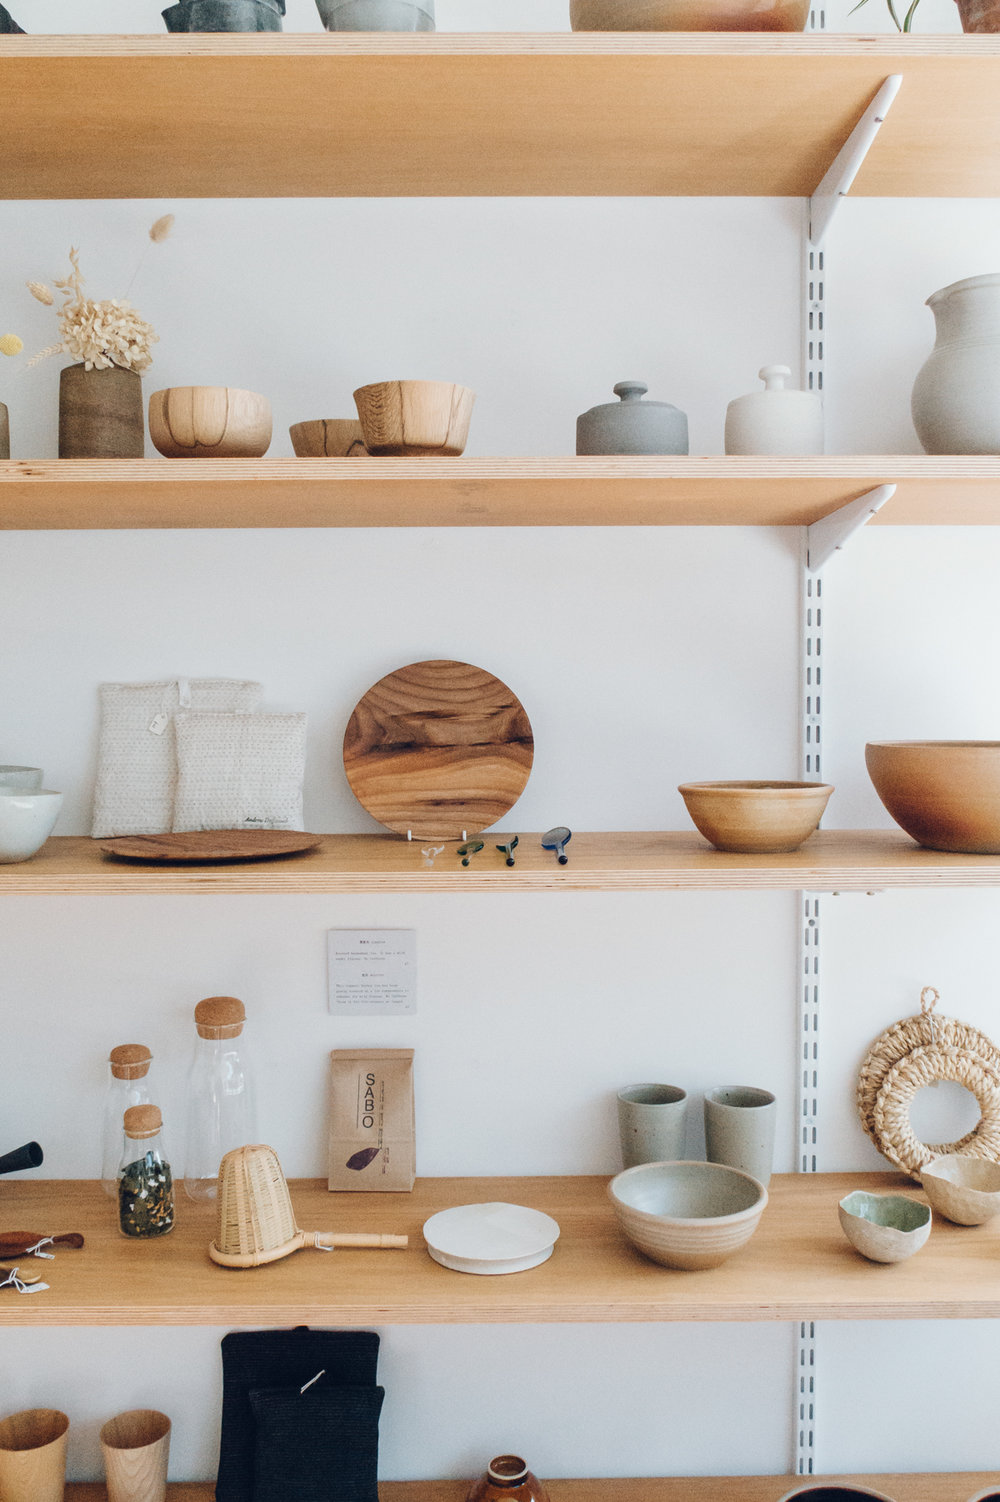 Shelves of ceramics and beautiful handmade items